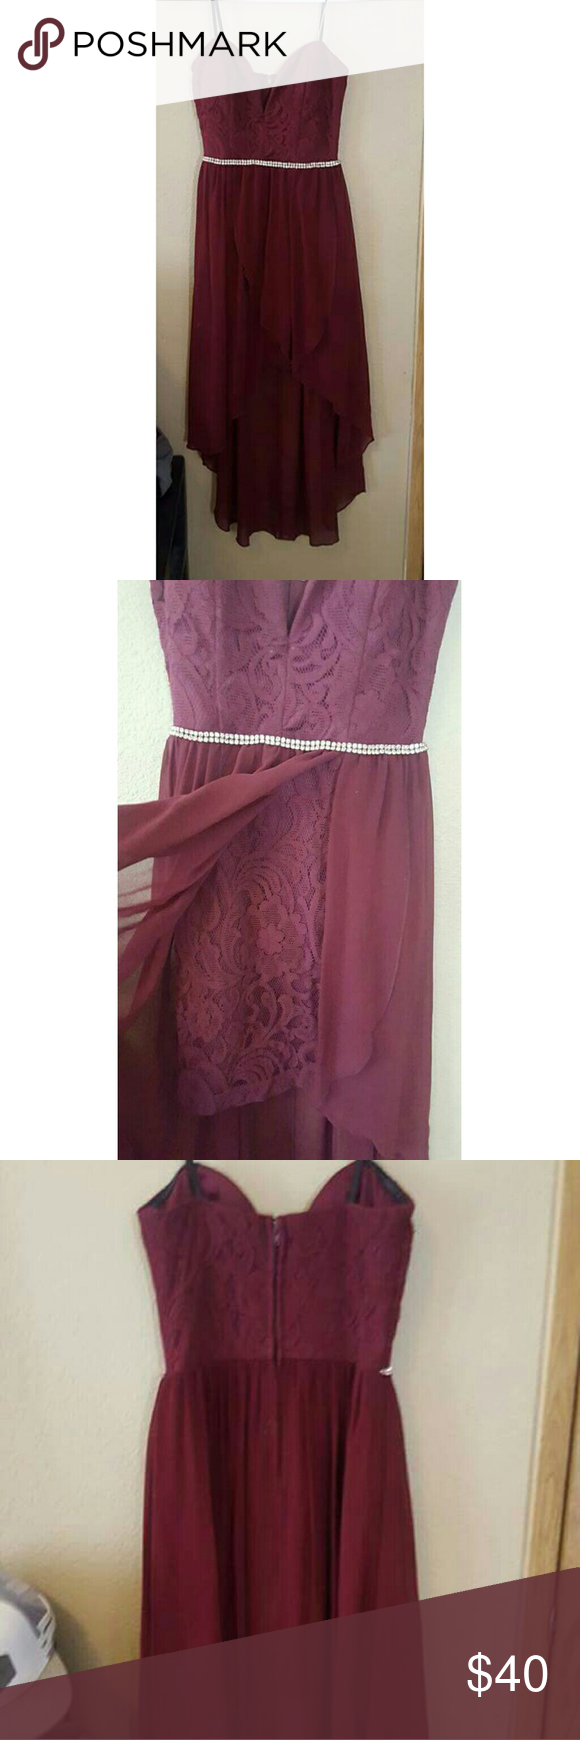 Maroon formal/cocktail dress Like new! No snags or stains. City ...